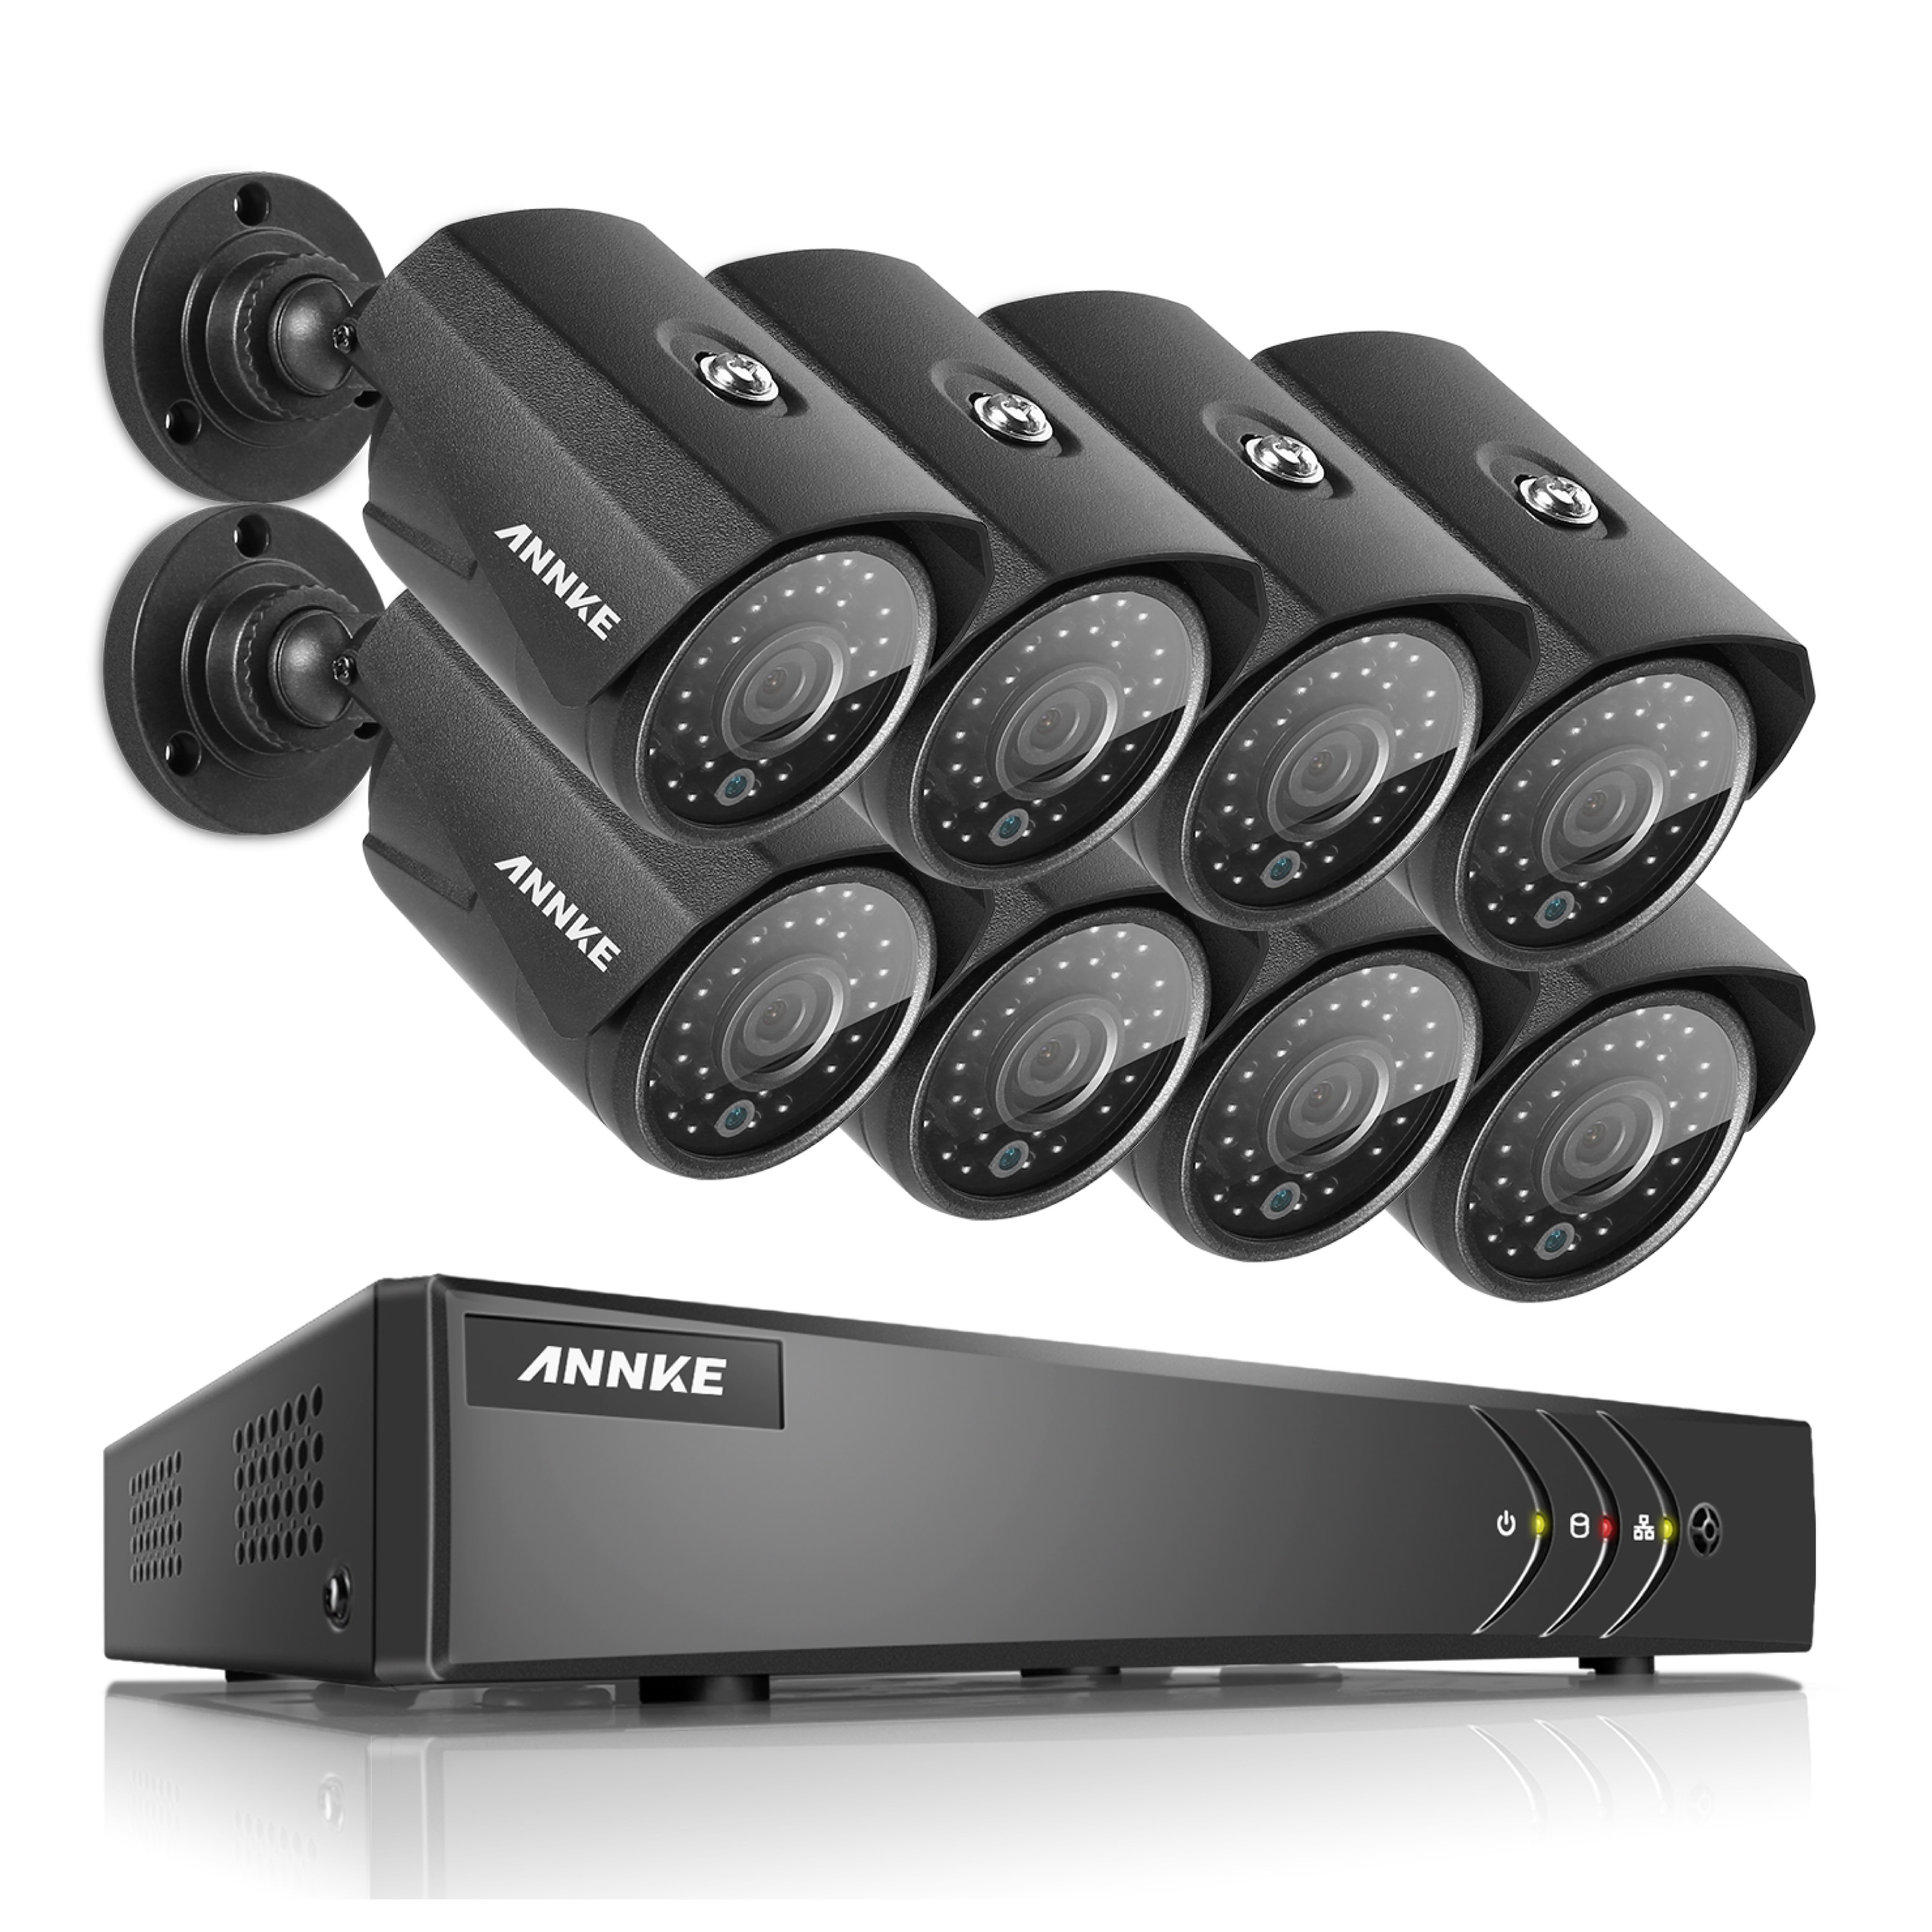 ANNKE 8CH HD 1080N TVI Video Security System DVR with 8Pcs 960P Weatherproof Cameras Night Vision-NO HDD